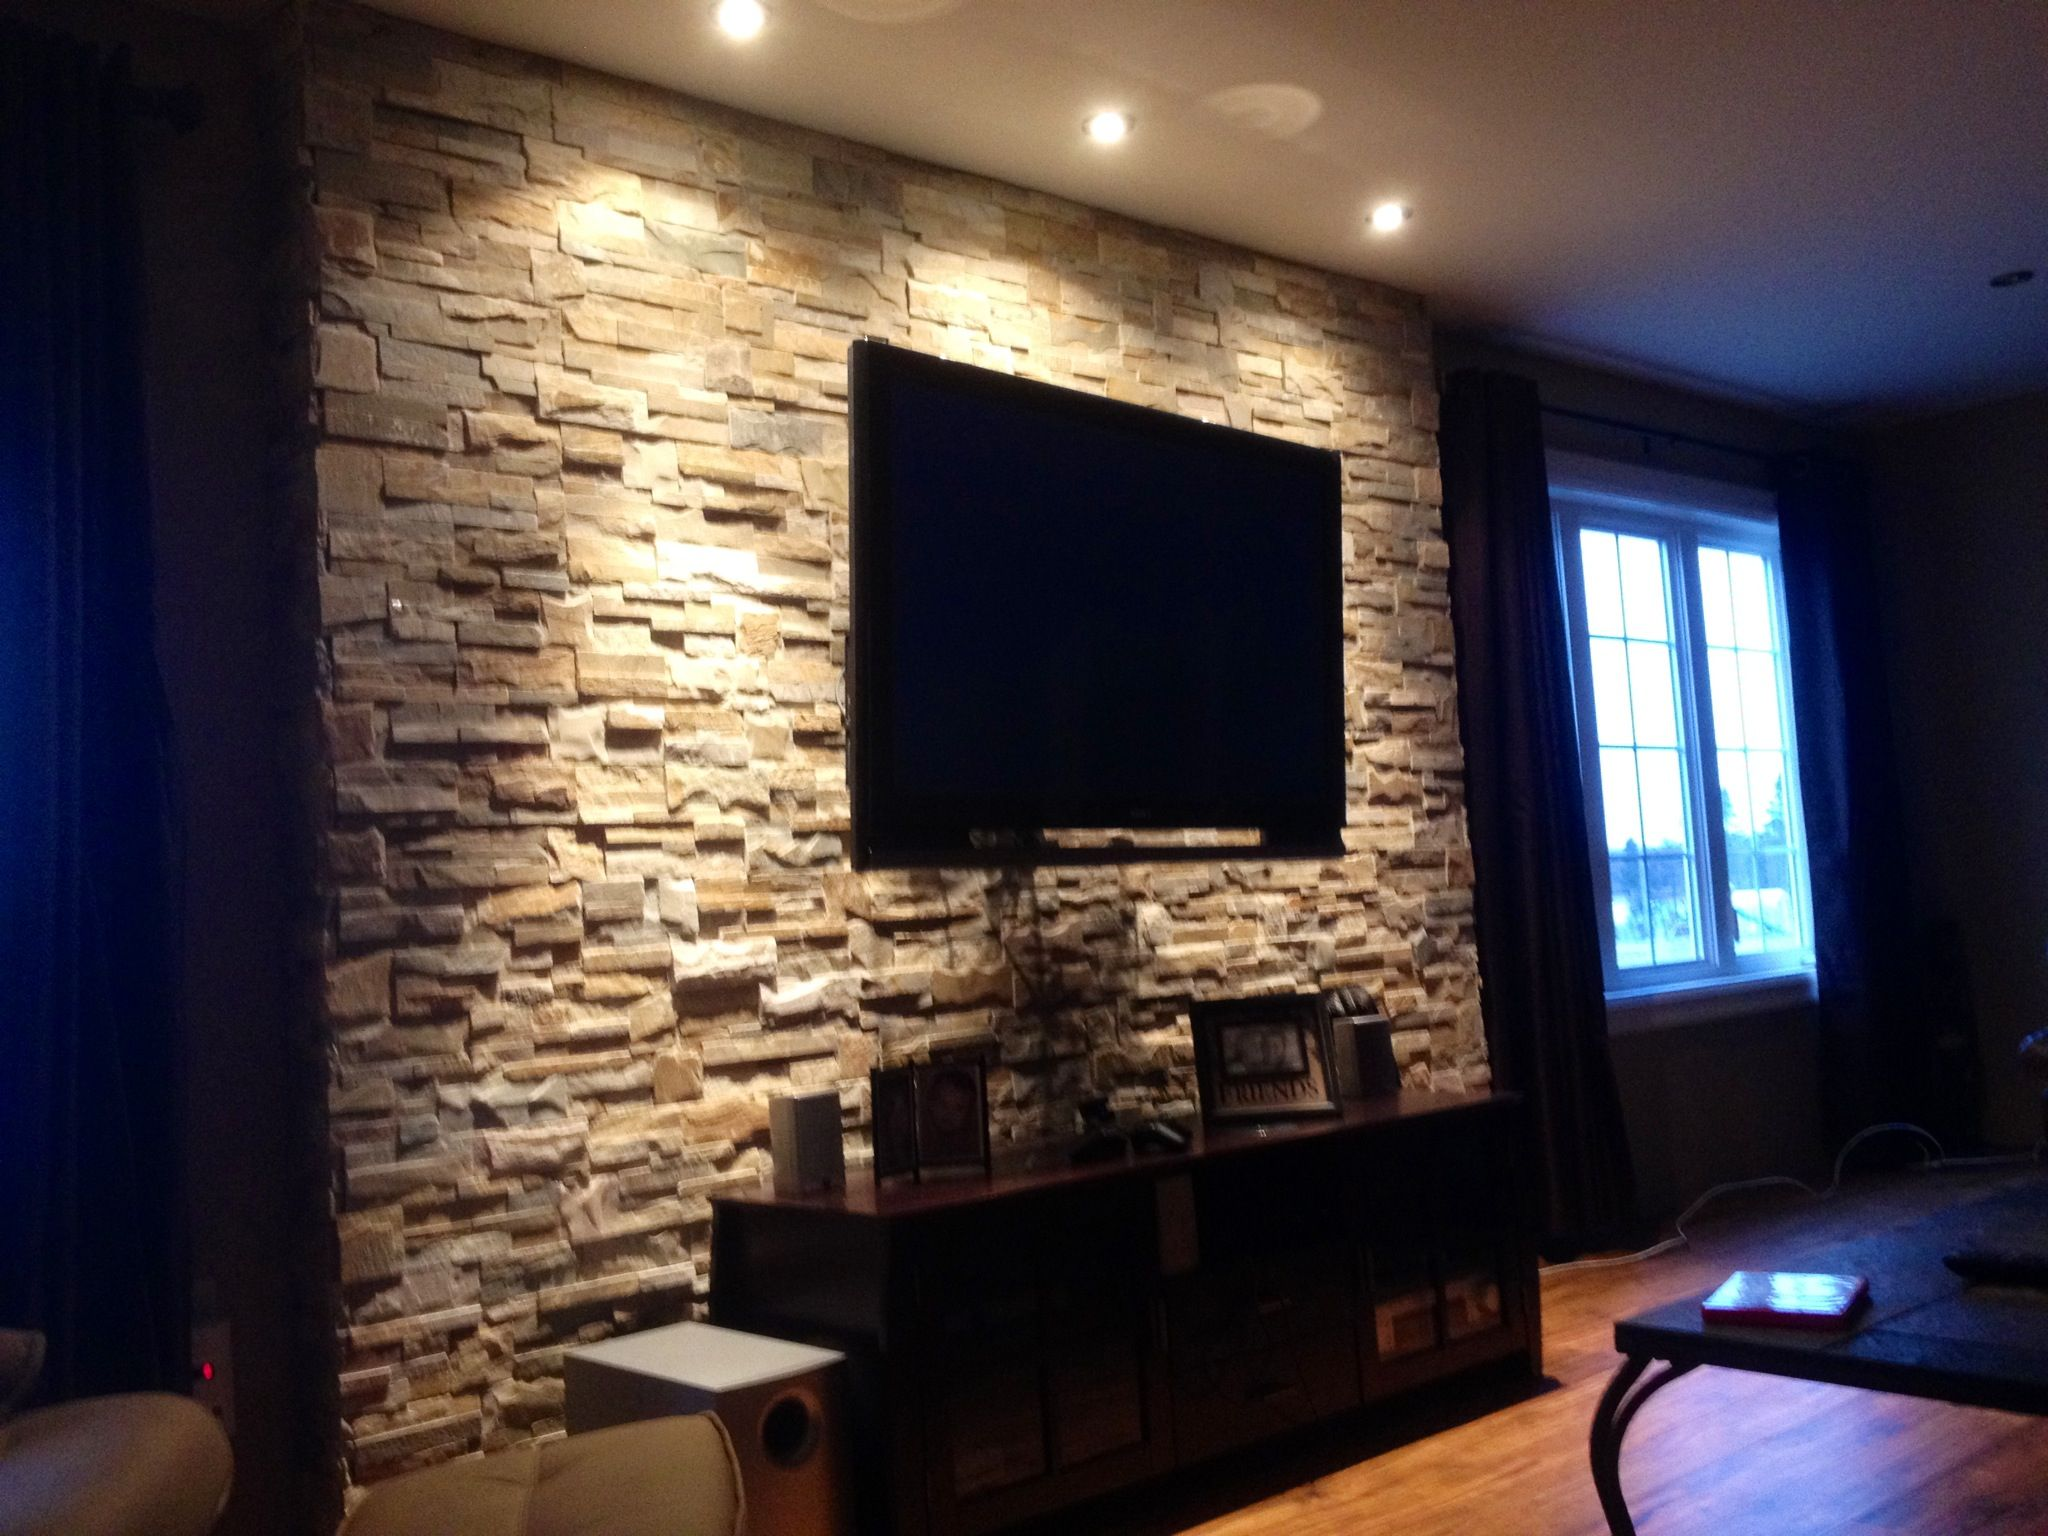 Tv On The Wall Ideas 15 Best Tv Wall Ideas Images On Pinterest  Tv Walls Wall Ideas